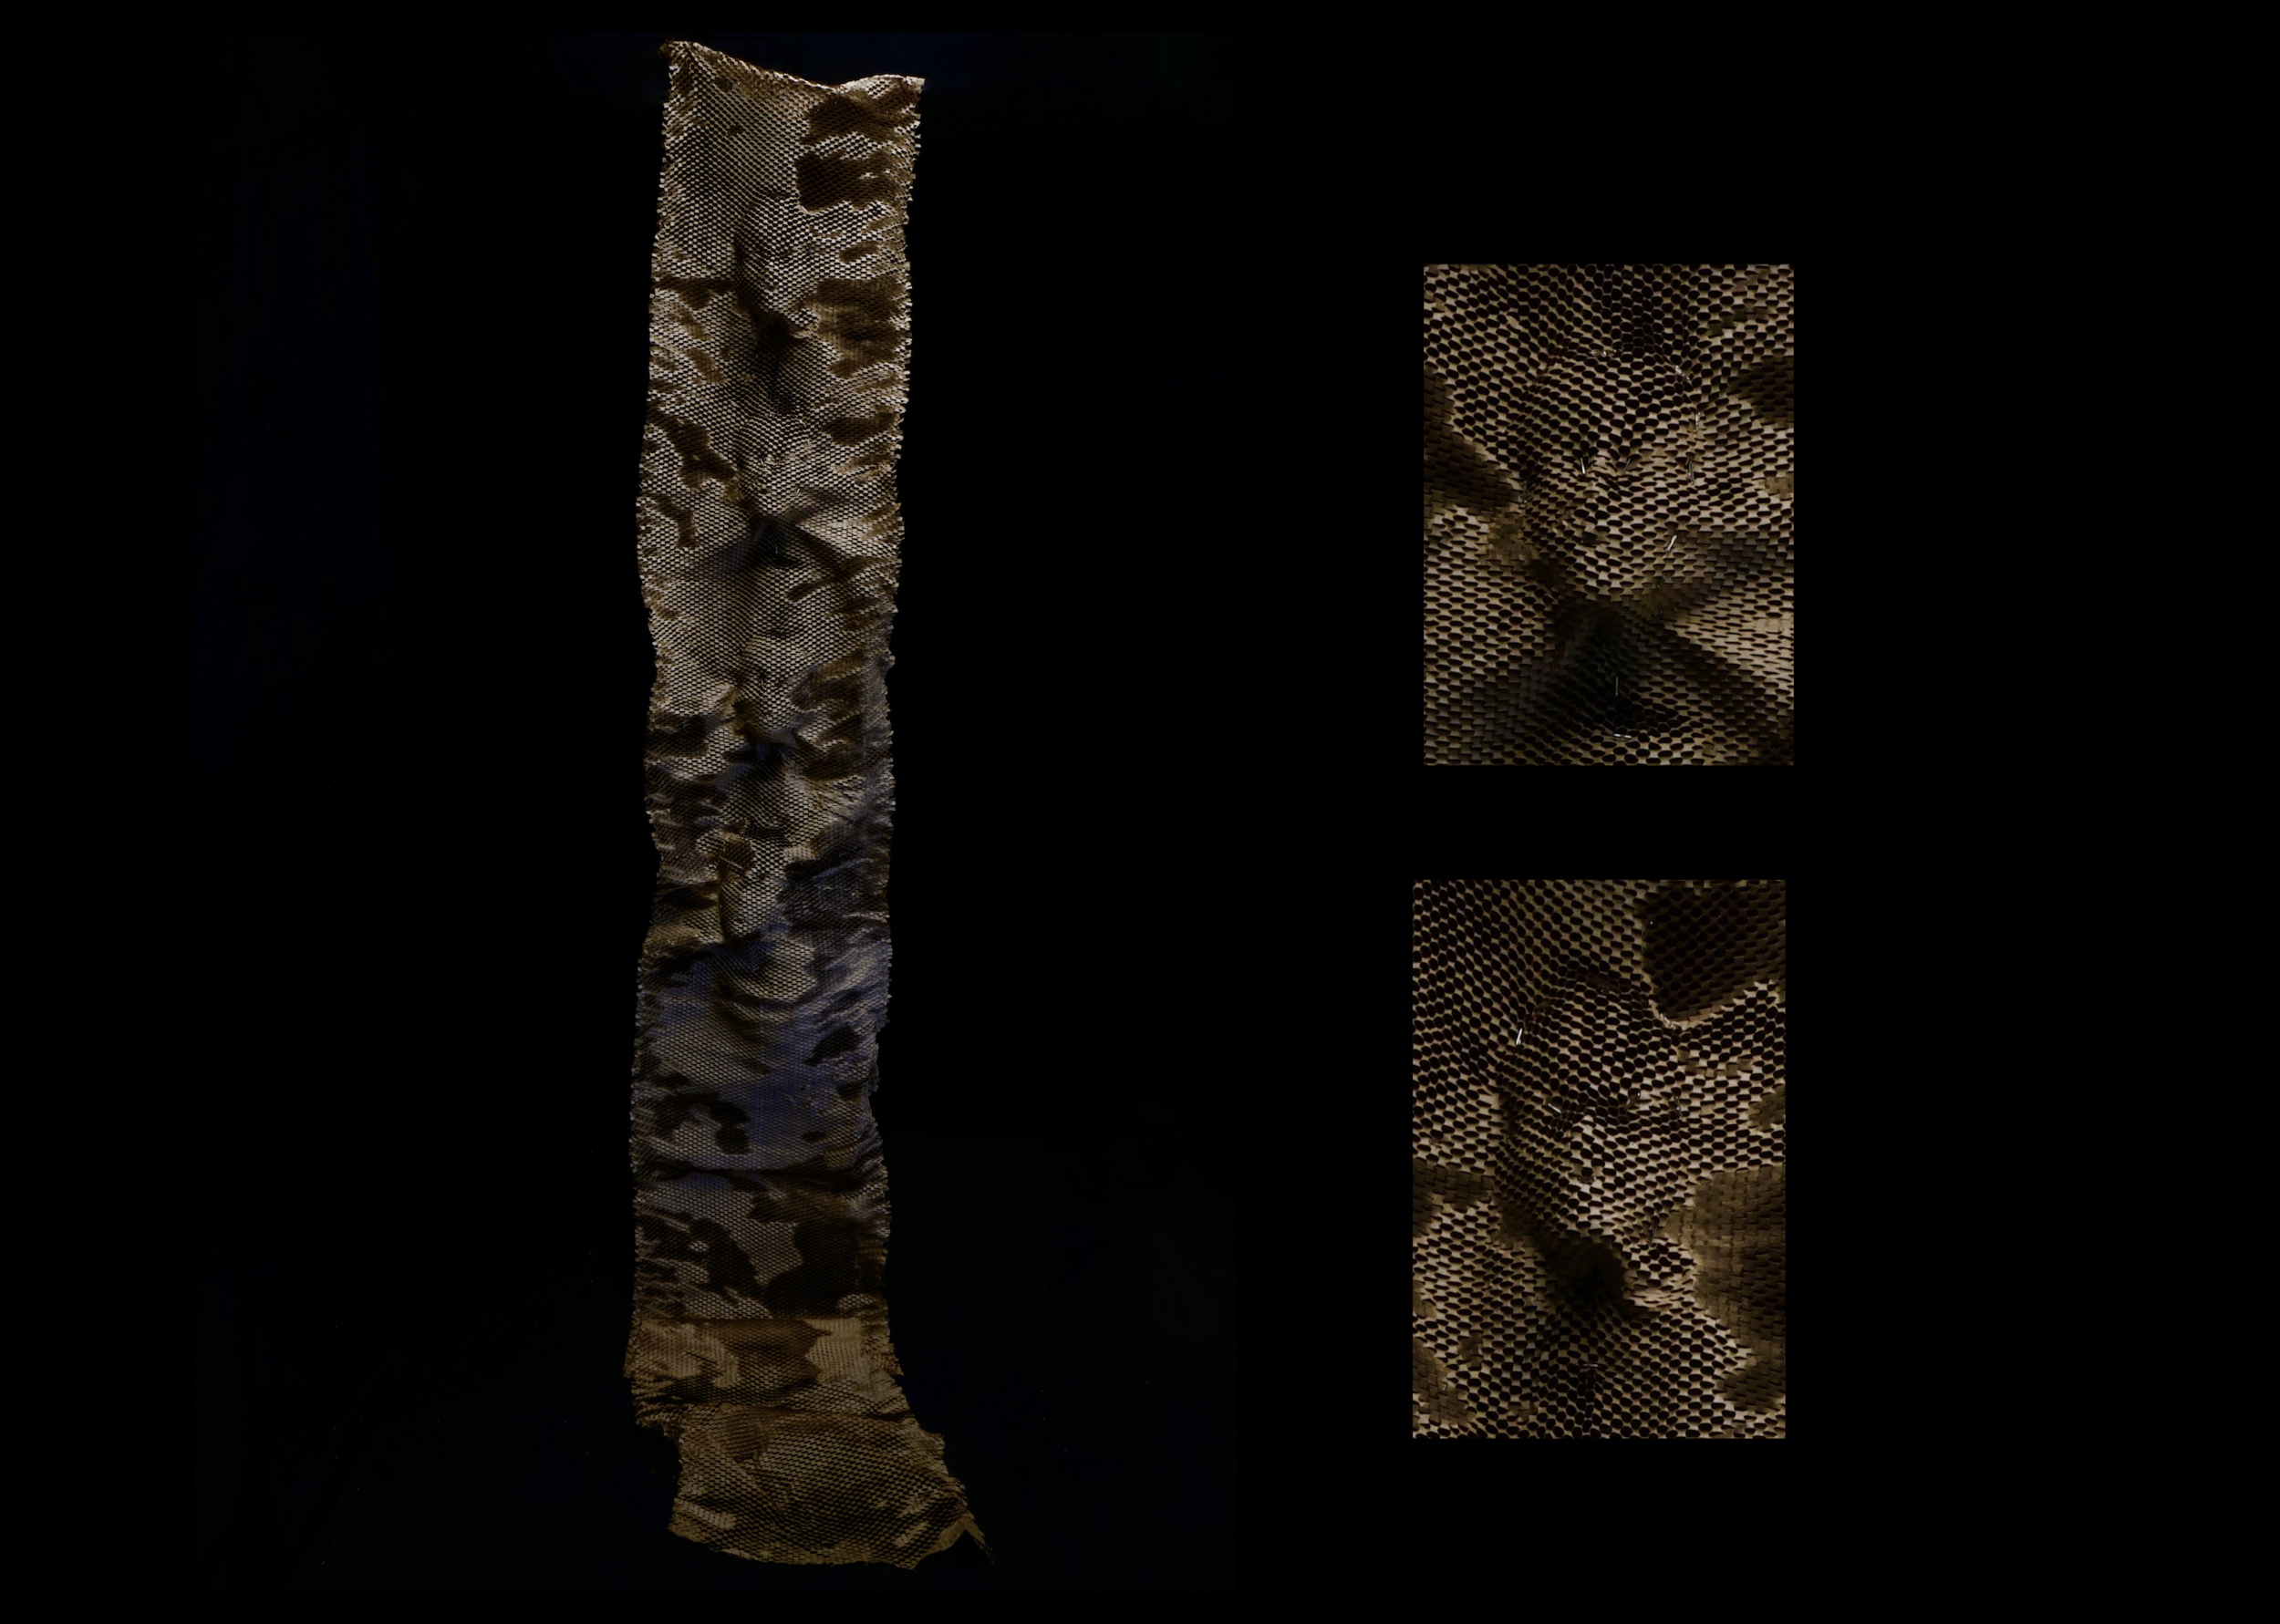 06__Echos_96x20x4_packing paper, molded faces.jpg